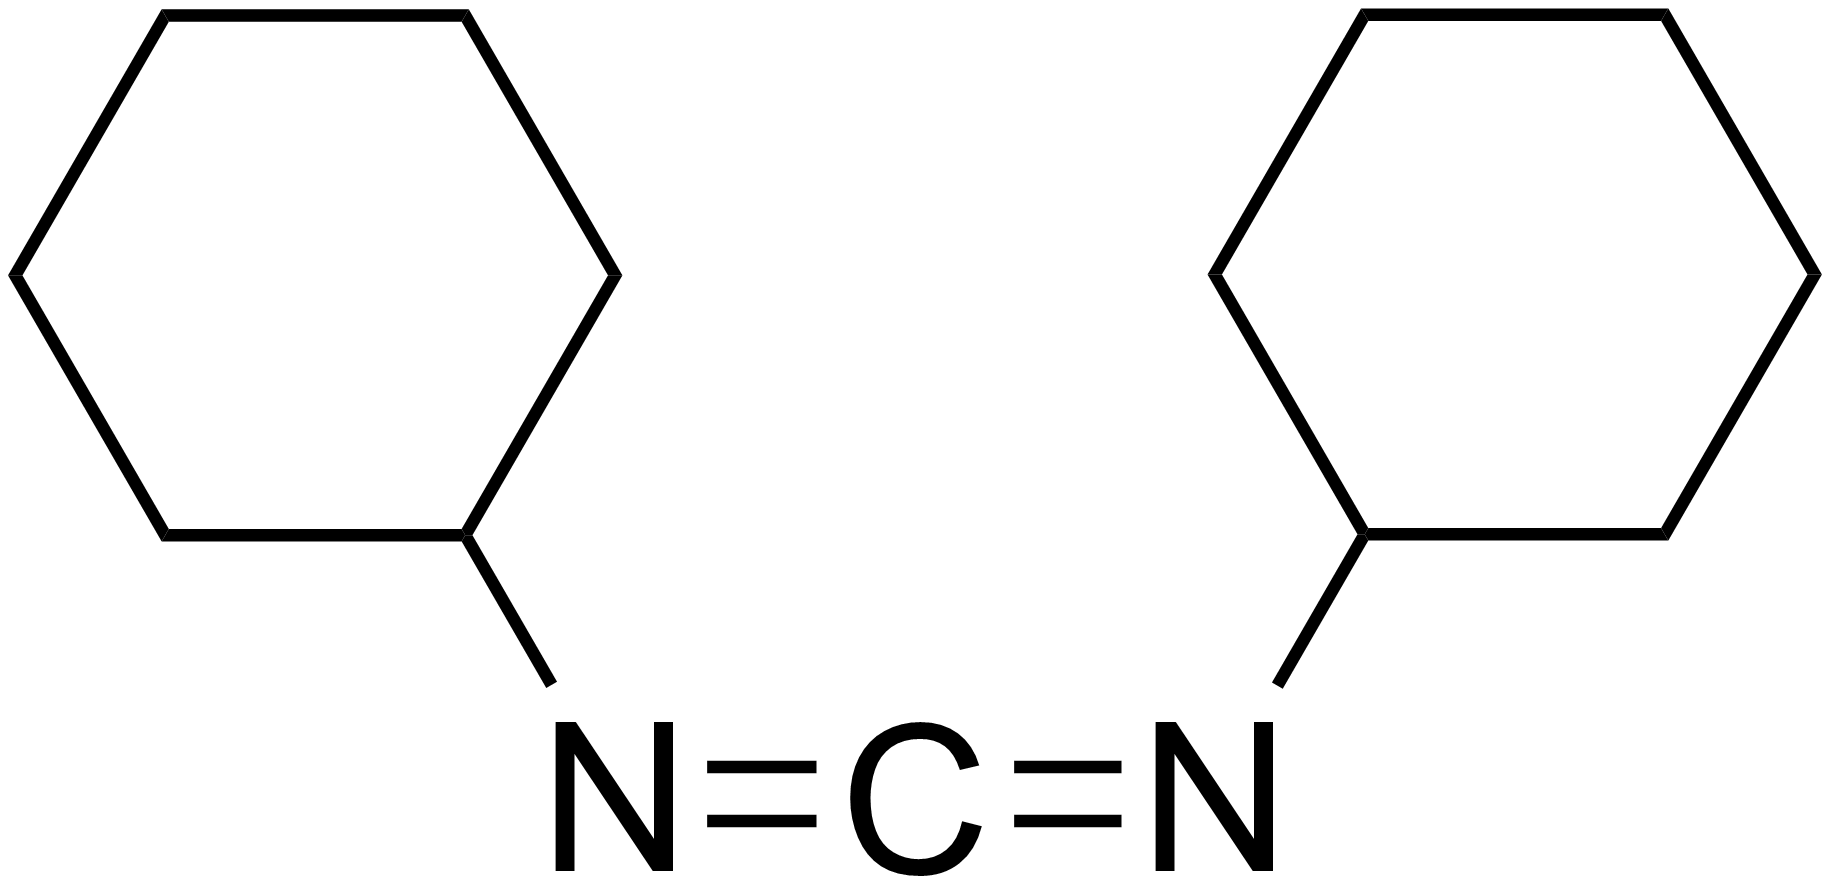 N,N'-Dicyclohexylcarbodiimide - Wikipedia